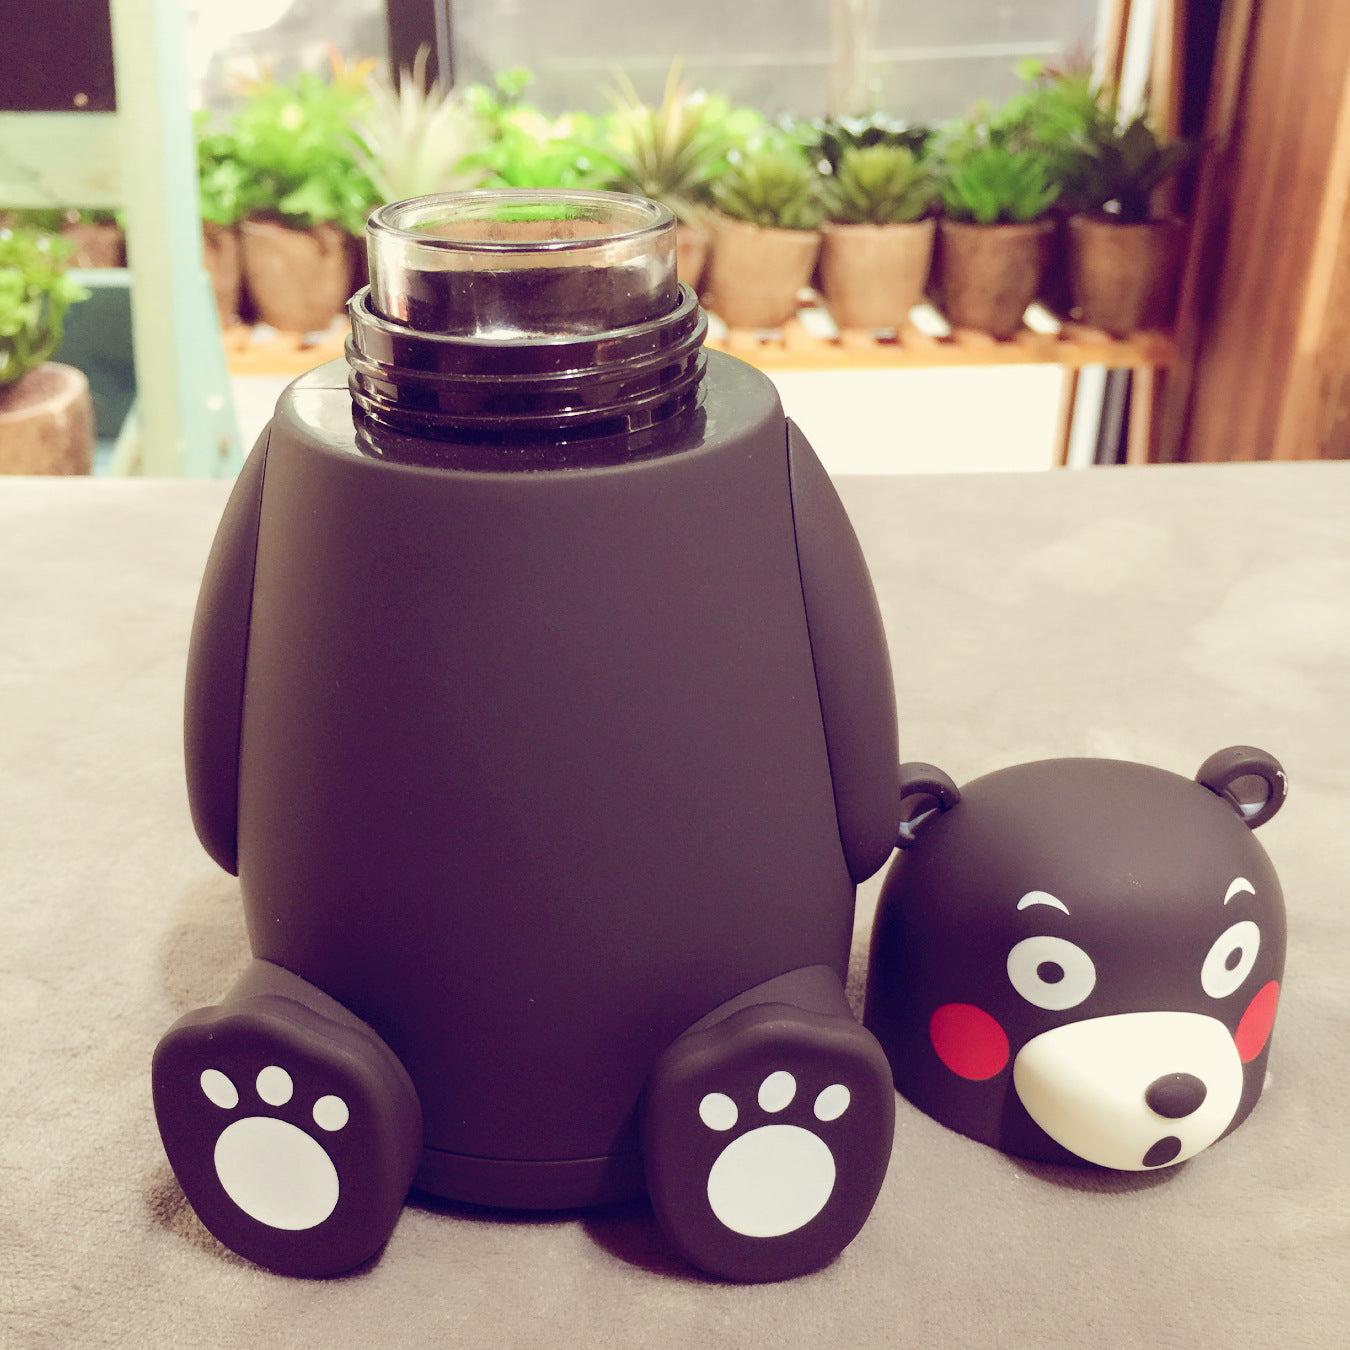 Cute Kumamon Japan Mascot Thermos Flasks